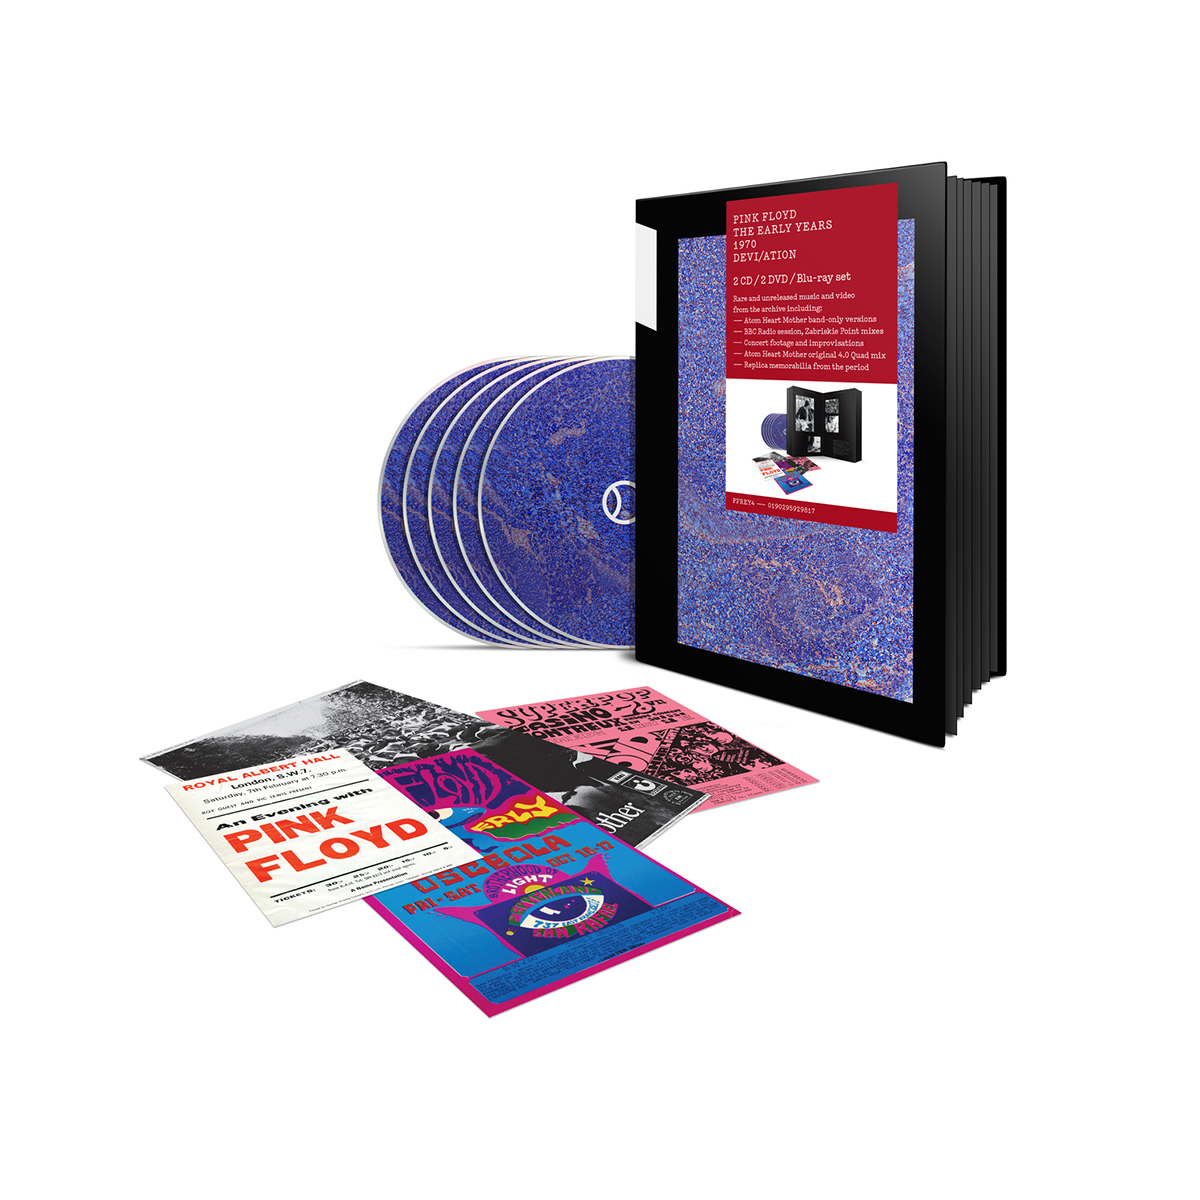 Pink Floyd Pink Floyd The Early Years 1970 Devi/Ation   2 Cd / 2 Dvd / Blu-Ray Set